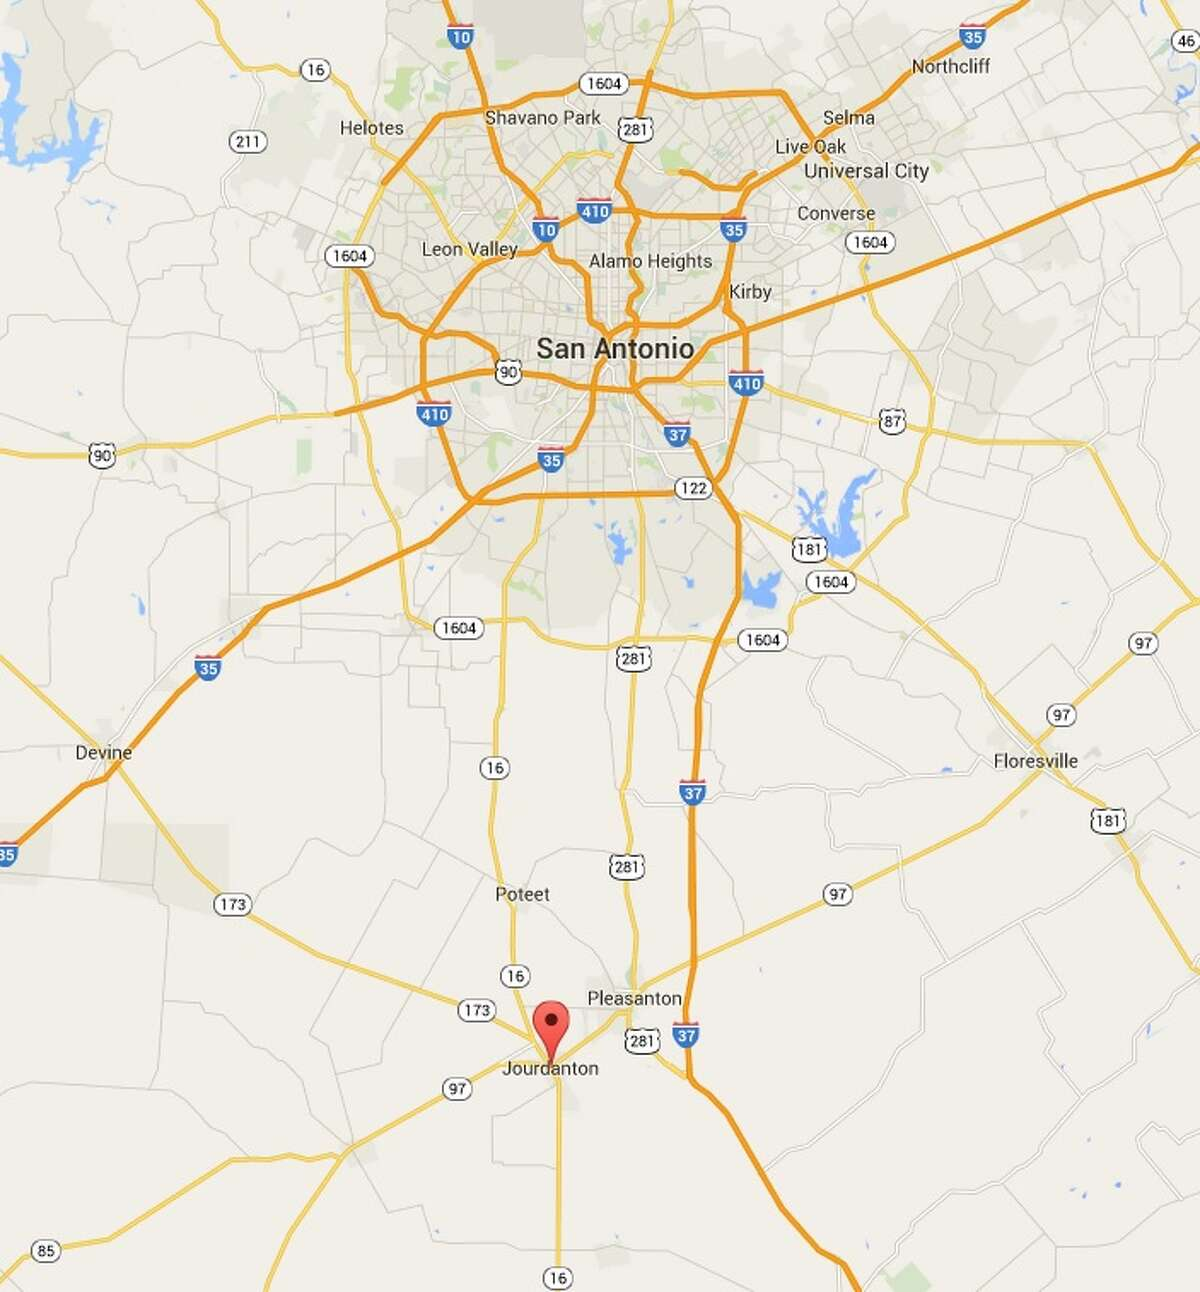 A man died Tuesday morning after being shot by a police officer in Jourdanton.